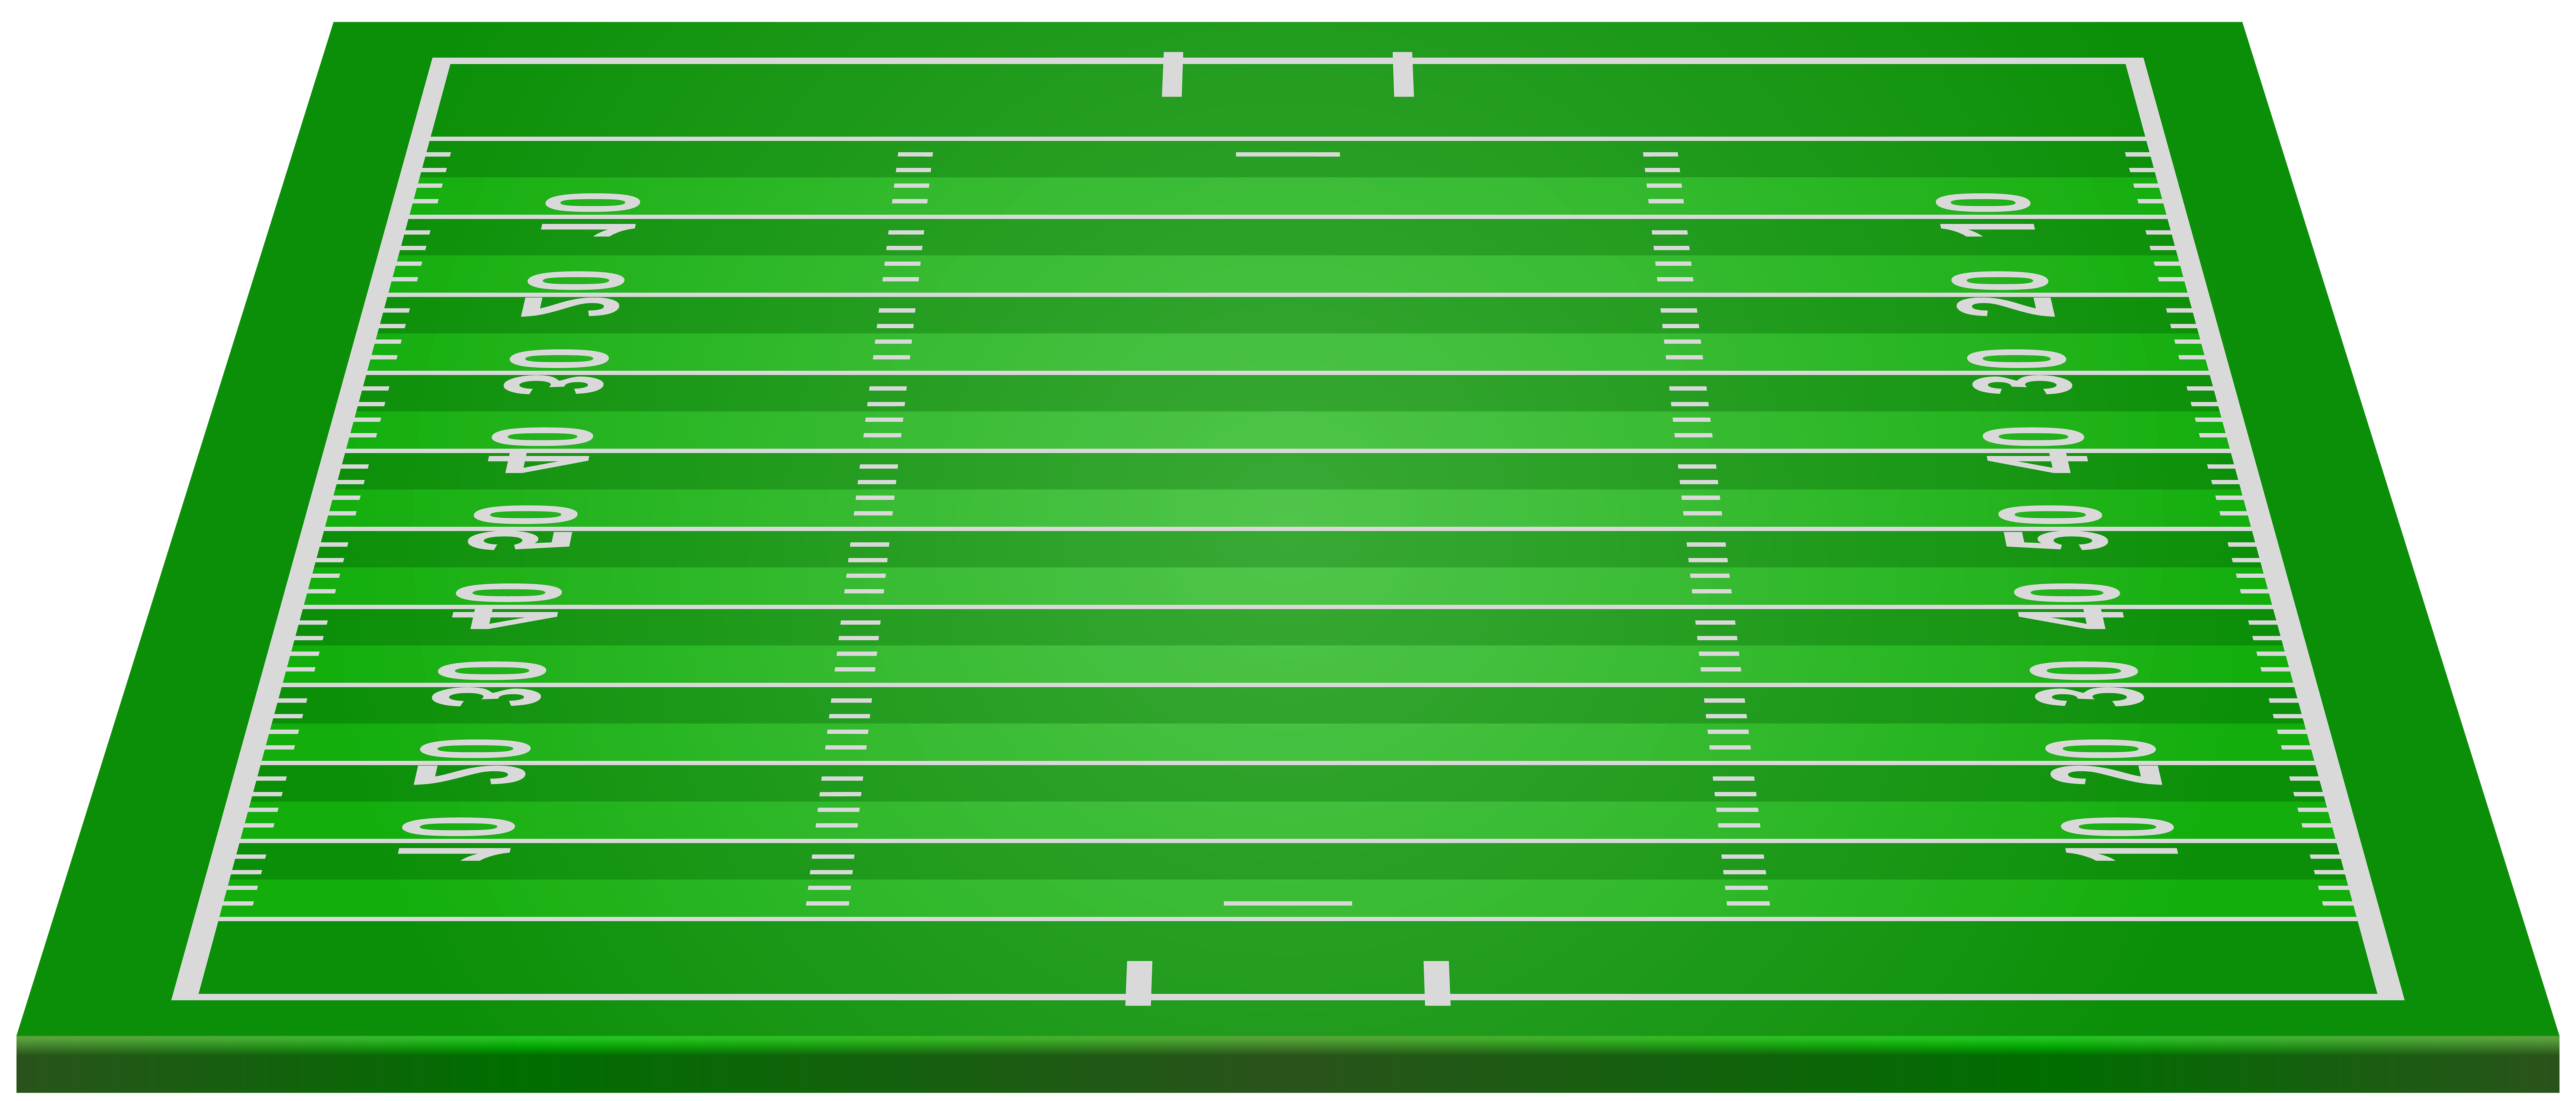 Football field grass clipart. American pitch clip art